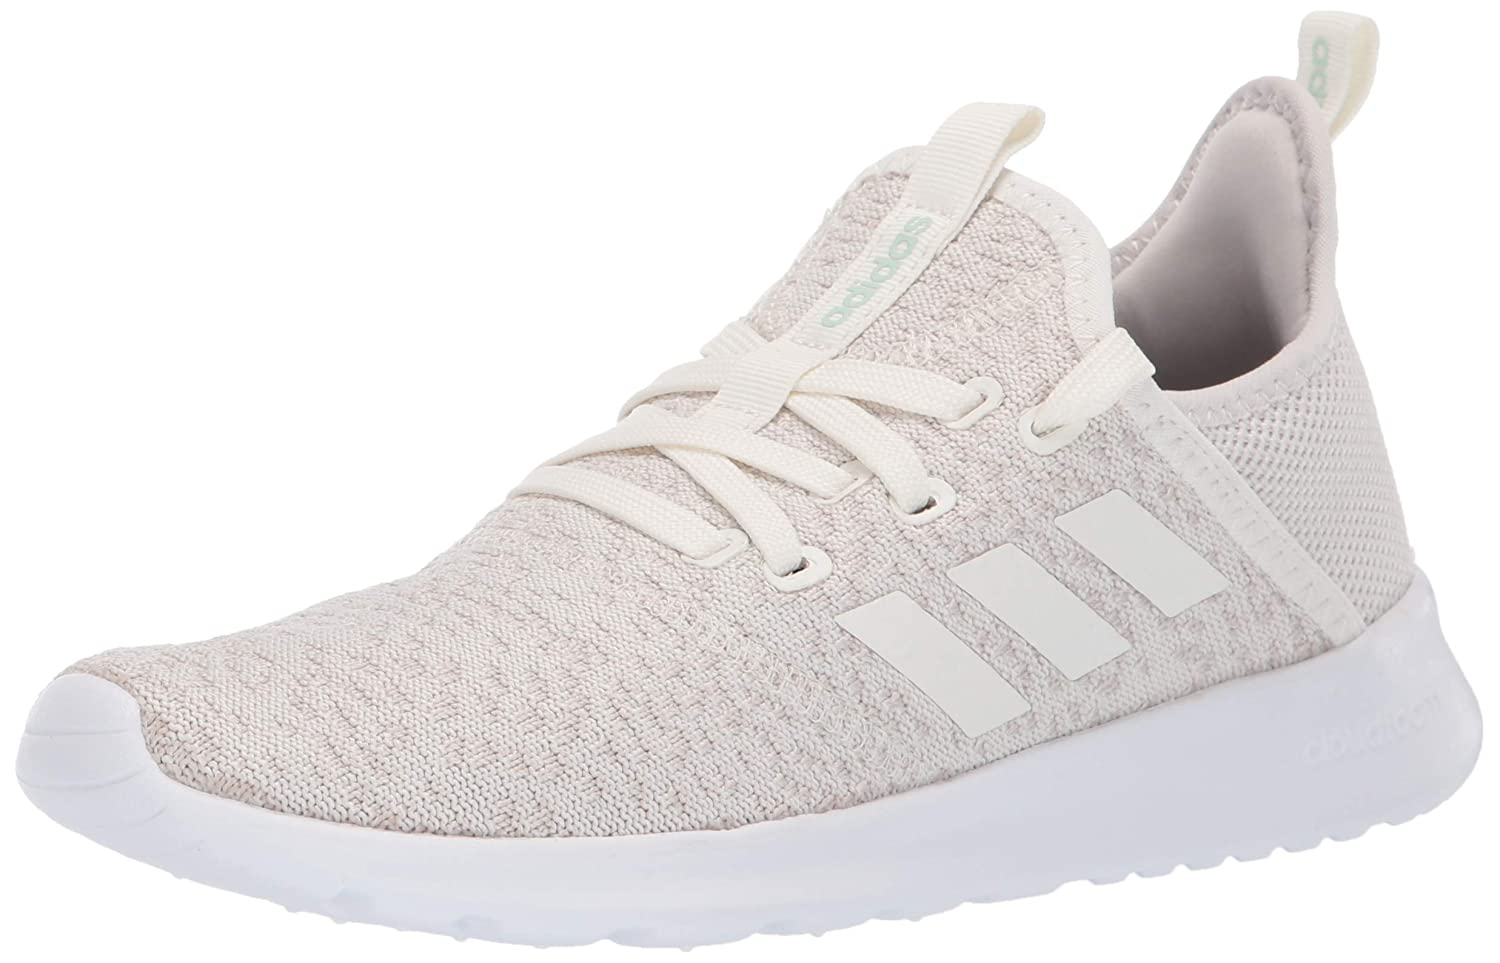 Adidas Women's Running Shoes Fashion Breathable Lace Up Light Chic Comfy Shoes